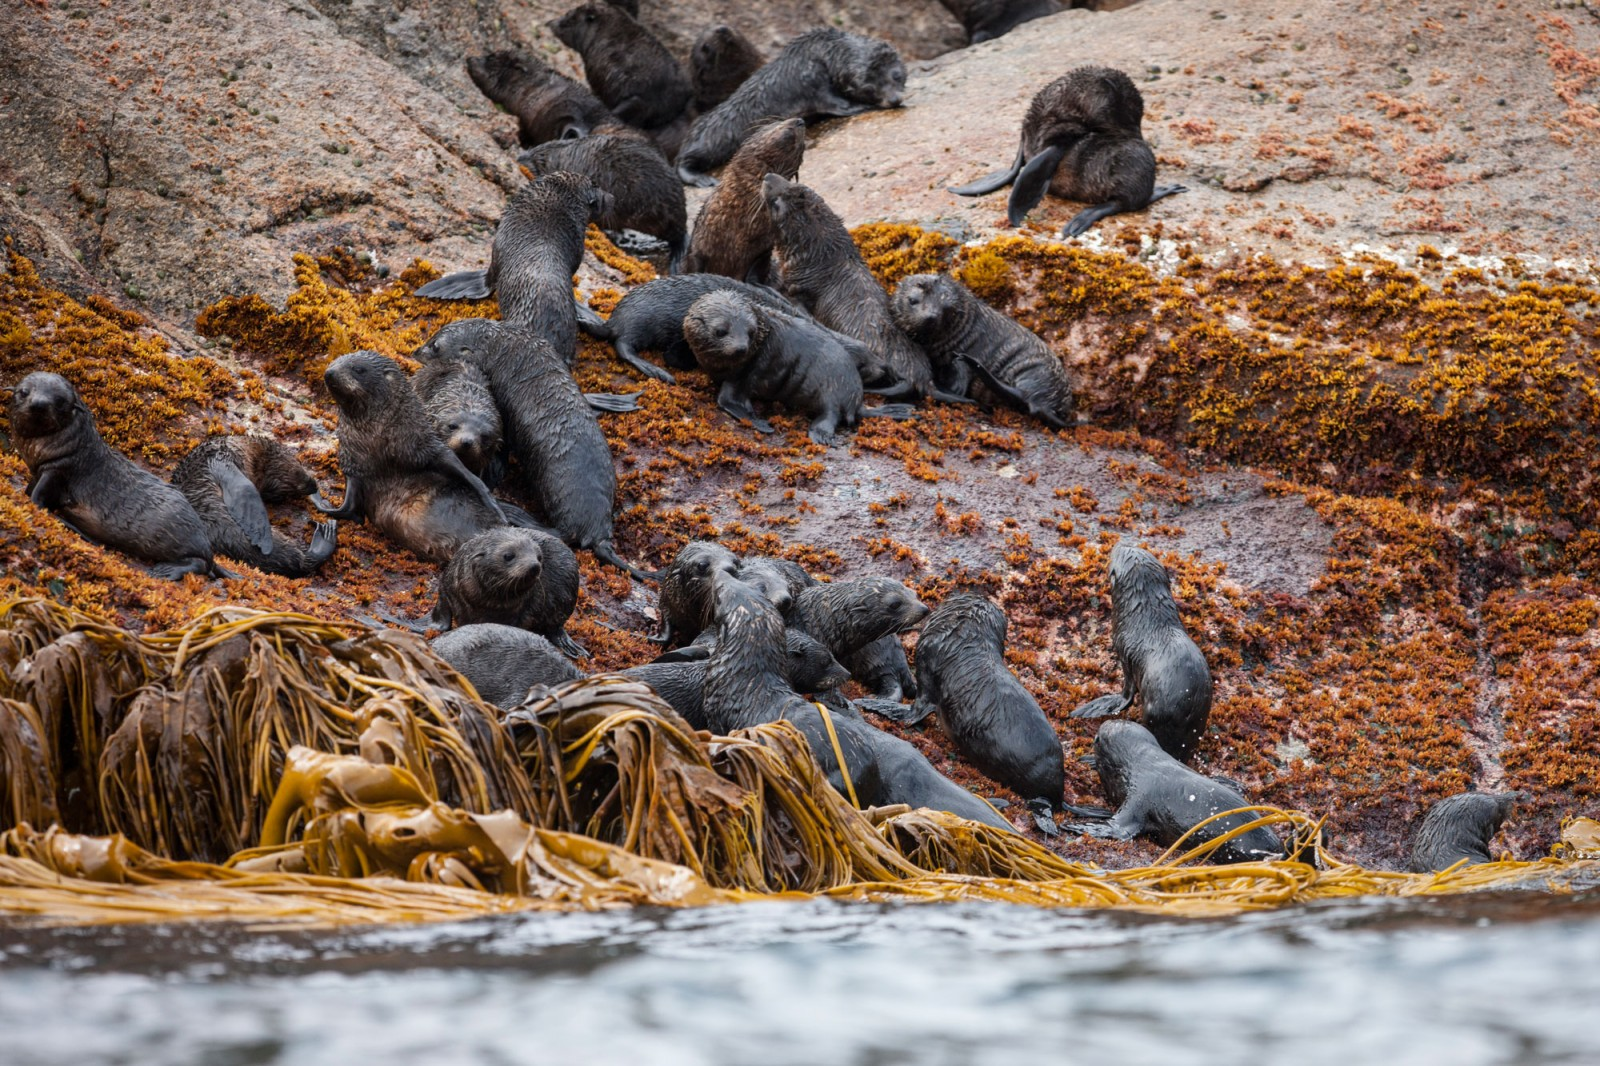 Pups emerge from the water while their mothers keep an eye on them from higher up on the rocks. By grouping together in informal nurseries, fur seal pups are afforded some protection from predators.